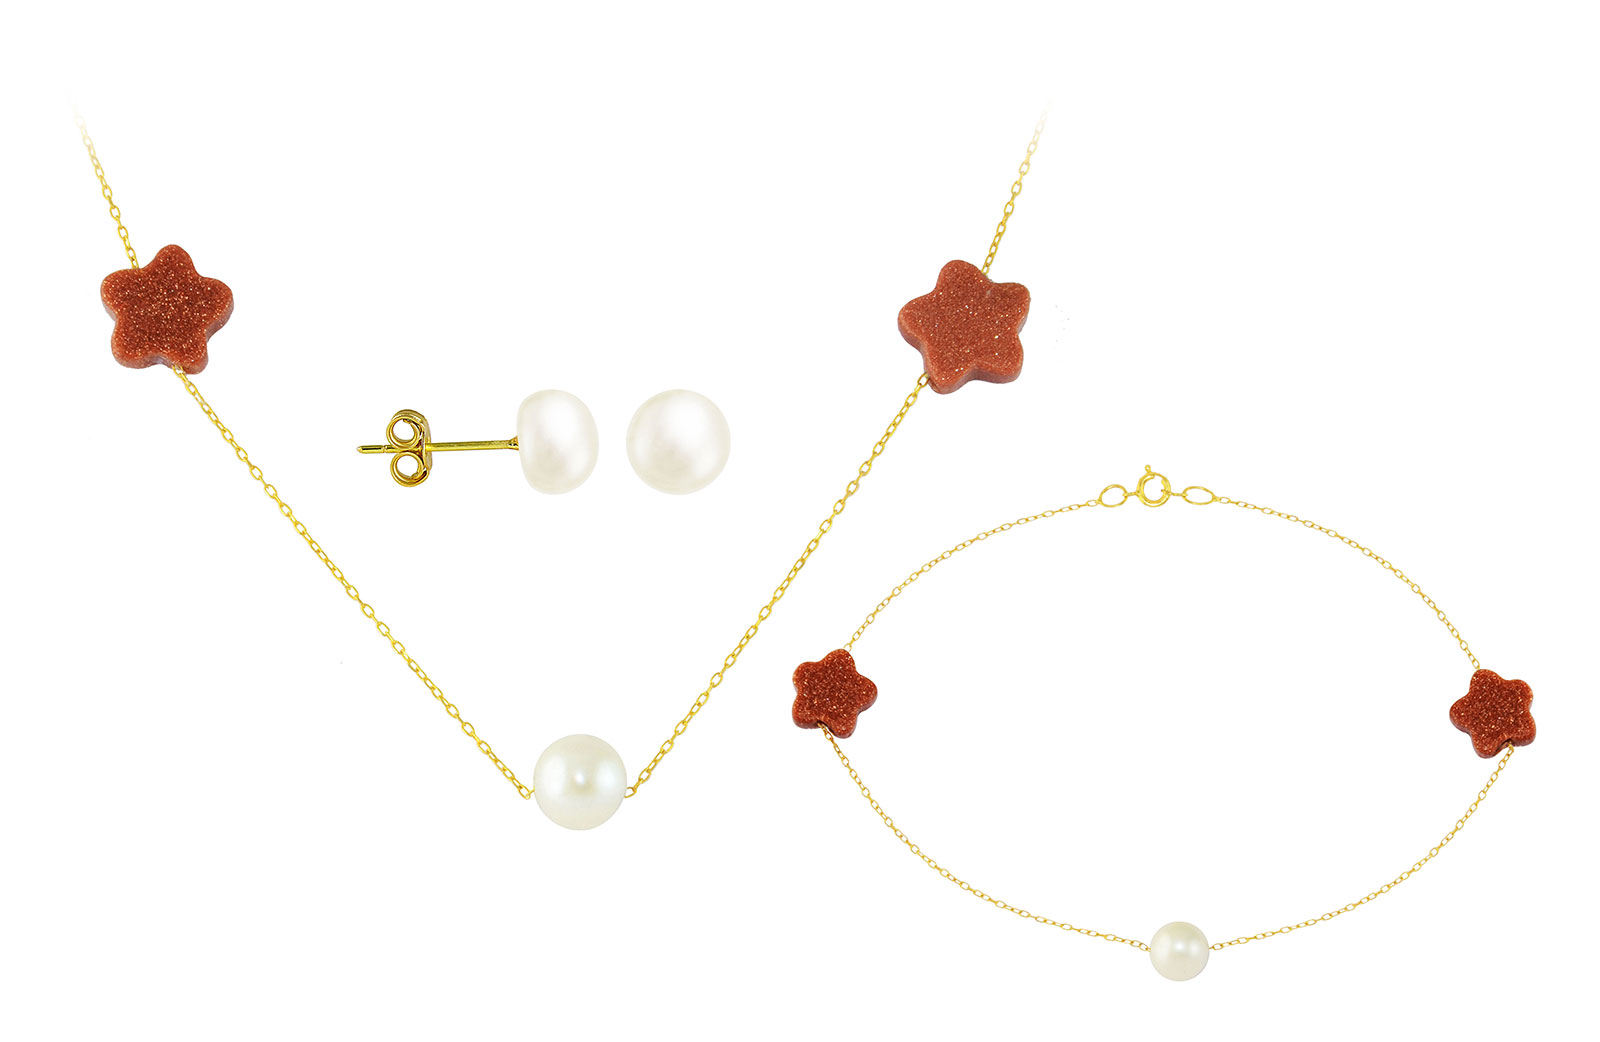 Vera Perla 10K  Solid Gold Star Sunstones and Pearl Necklace and Bracelet + 10K  Gold 7mm Pearl Earrings